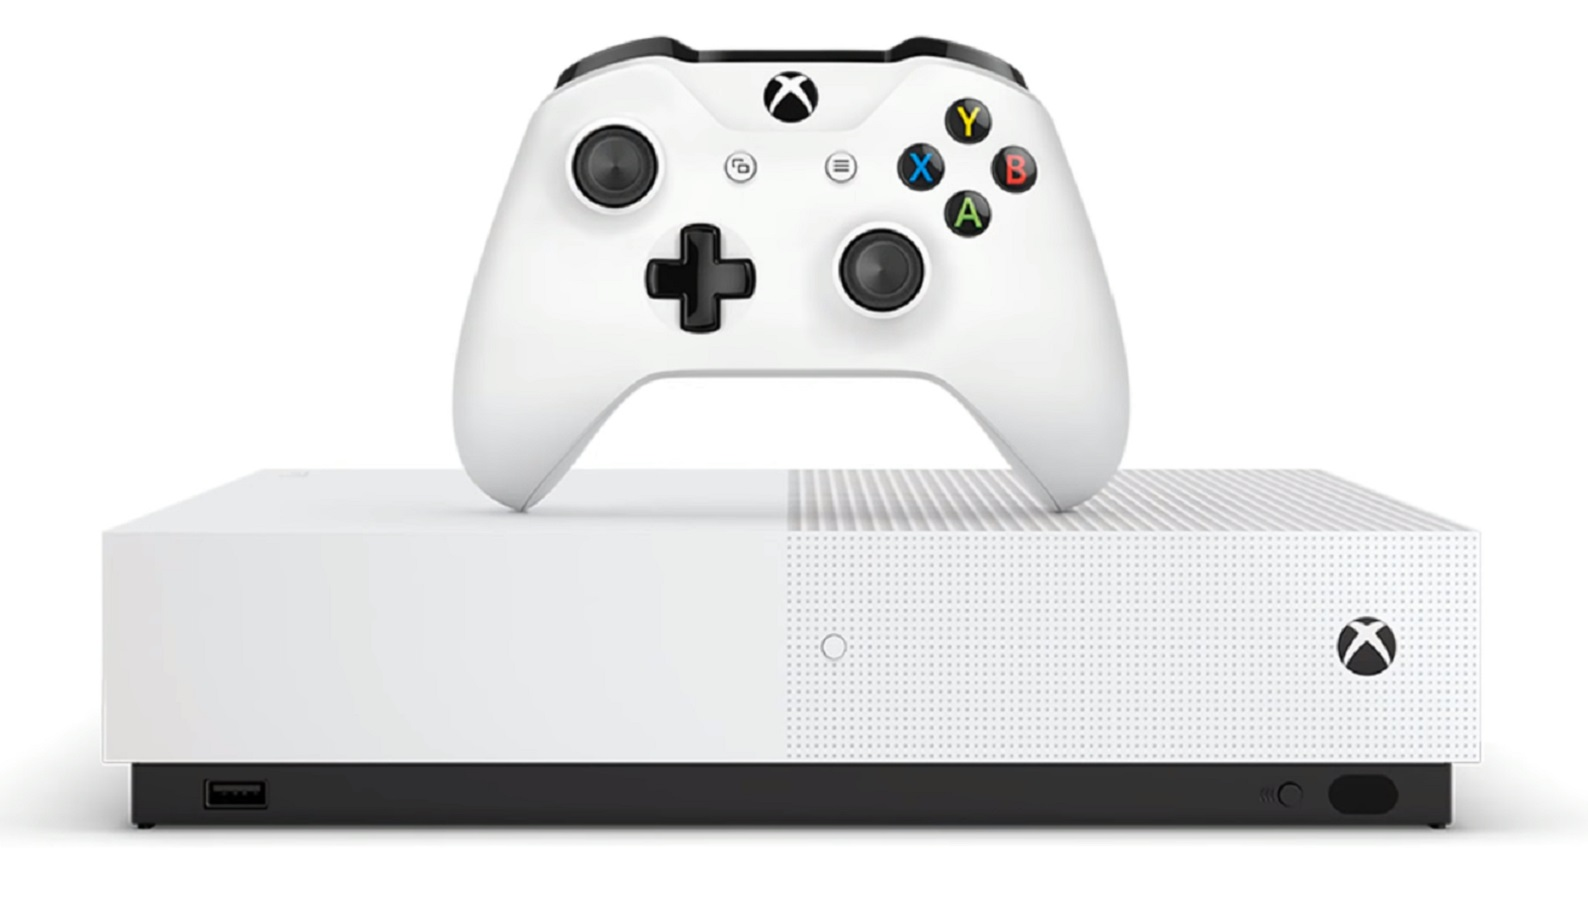 microsoft xbox one disc-less model